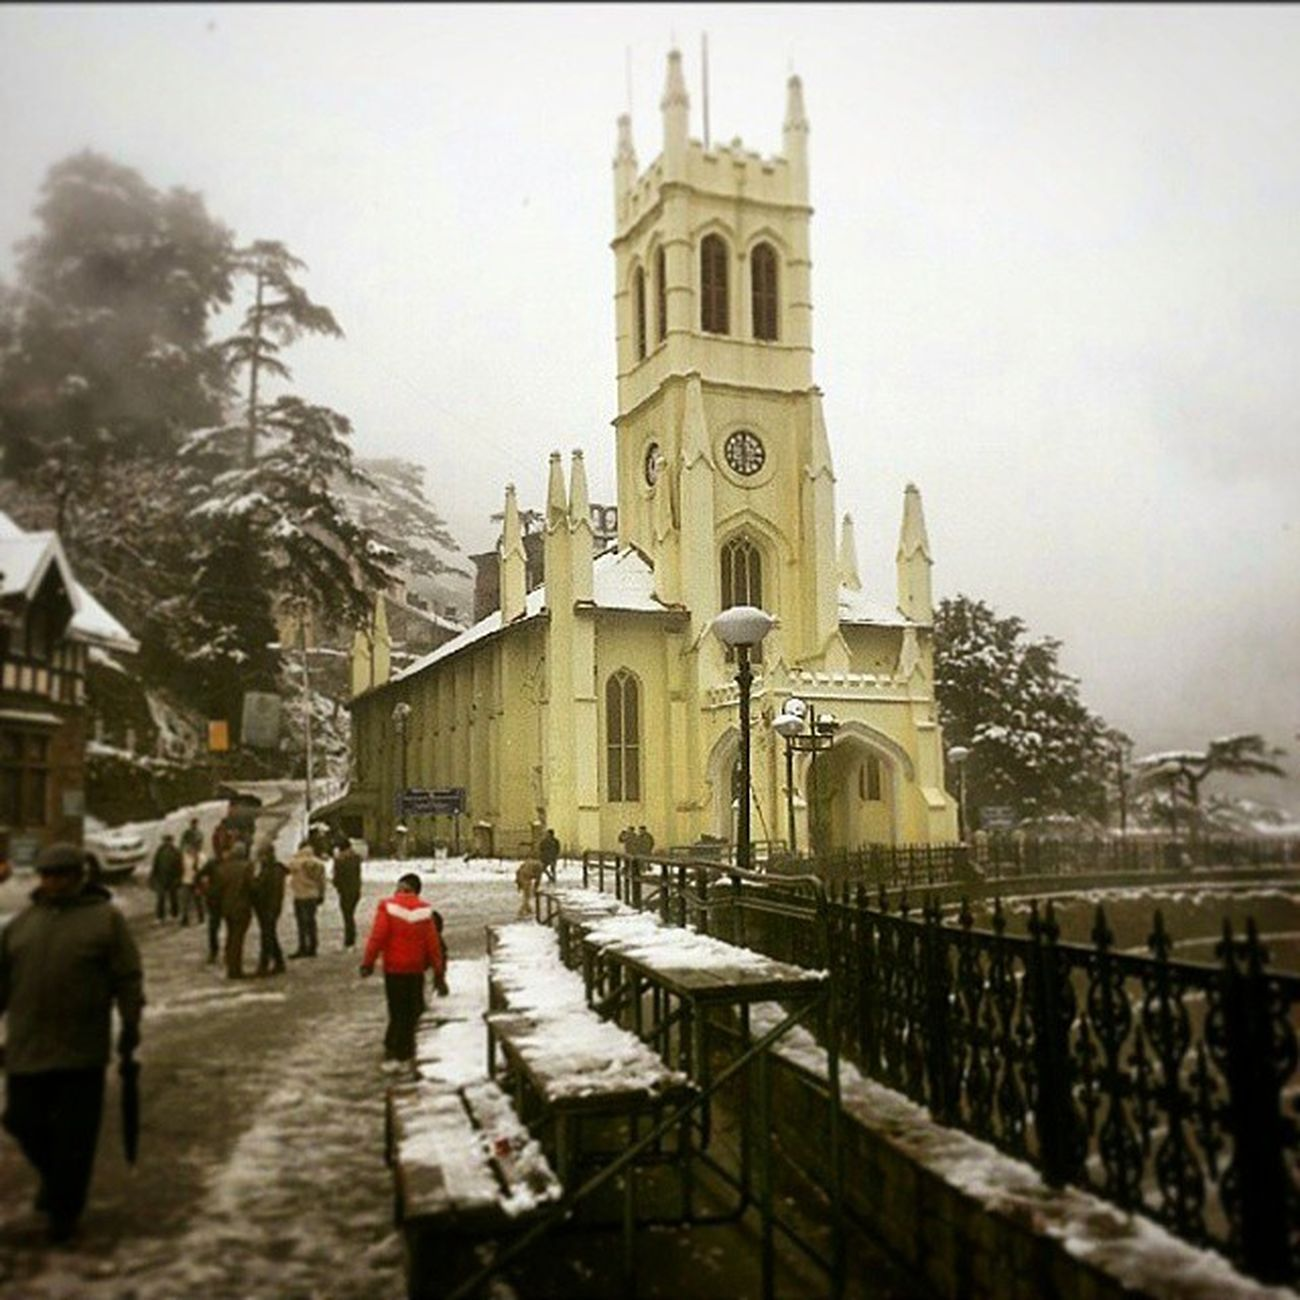 Picture credits @aashpixesgmail Beautiful Shimla Himachalpradesh Himachalpictures Snow Church Winter Foggy Weather Ourindia Discoverindia Ourplanetisbeautiful Teddaashi Lonelyplanetindia India_ig _oye Xploration_nation